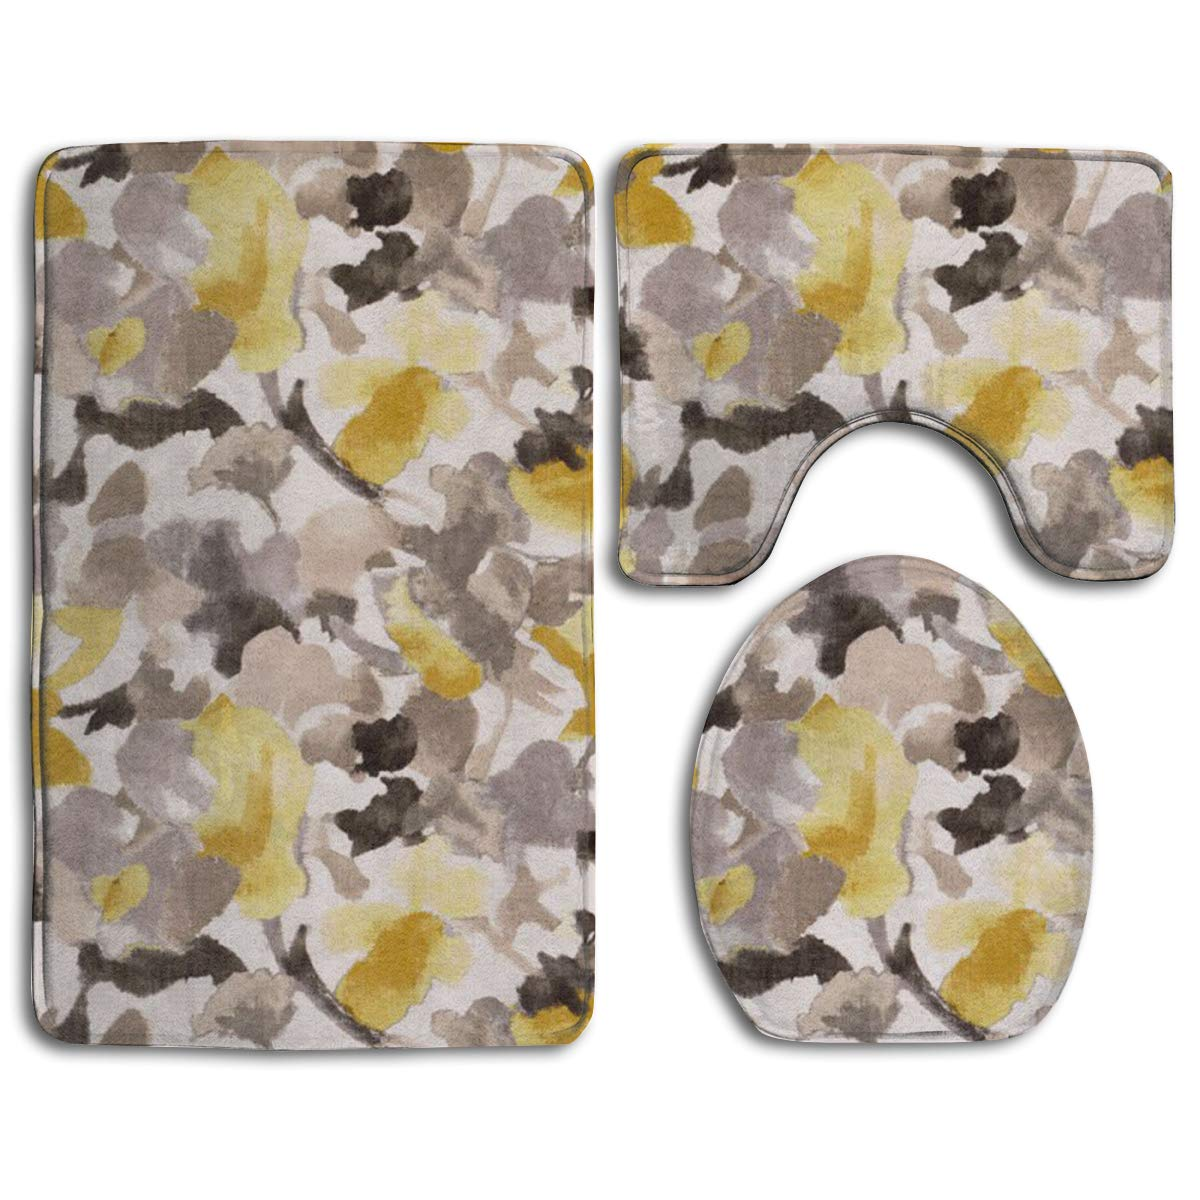 EREHome Yellow Gray Flower 9 Piece Bathroom Rugs Set Bath Rug Contour Mat  and Toilet Lid Cover